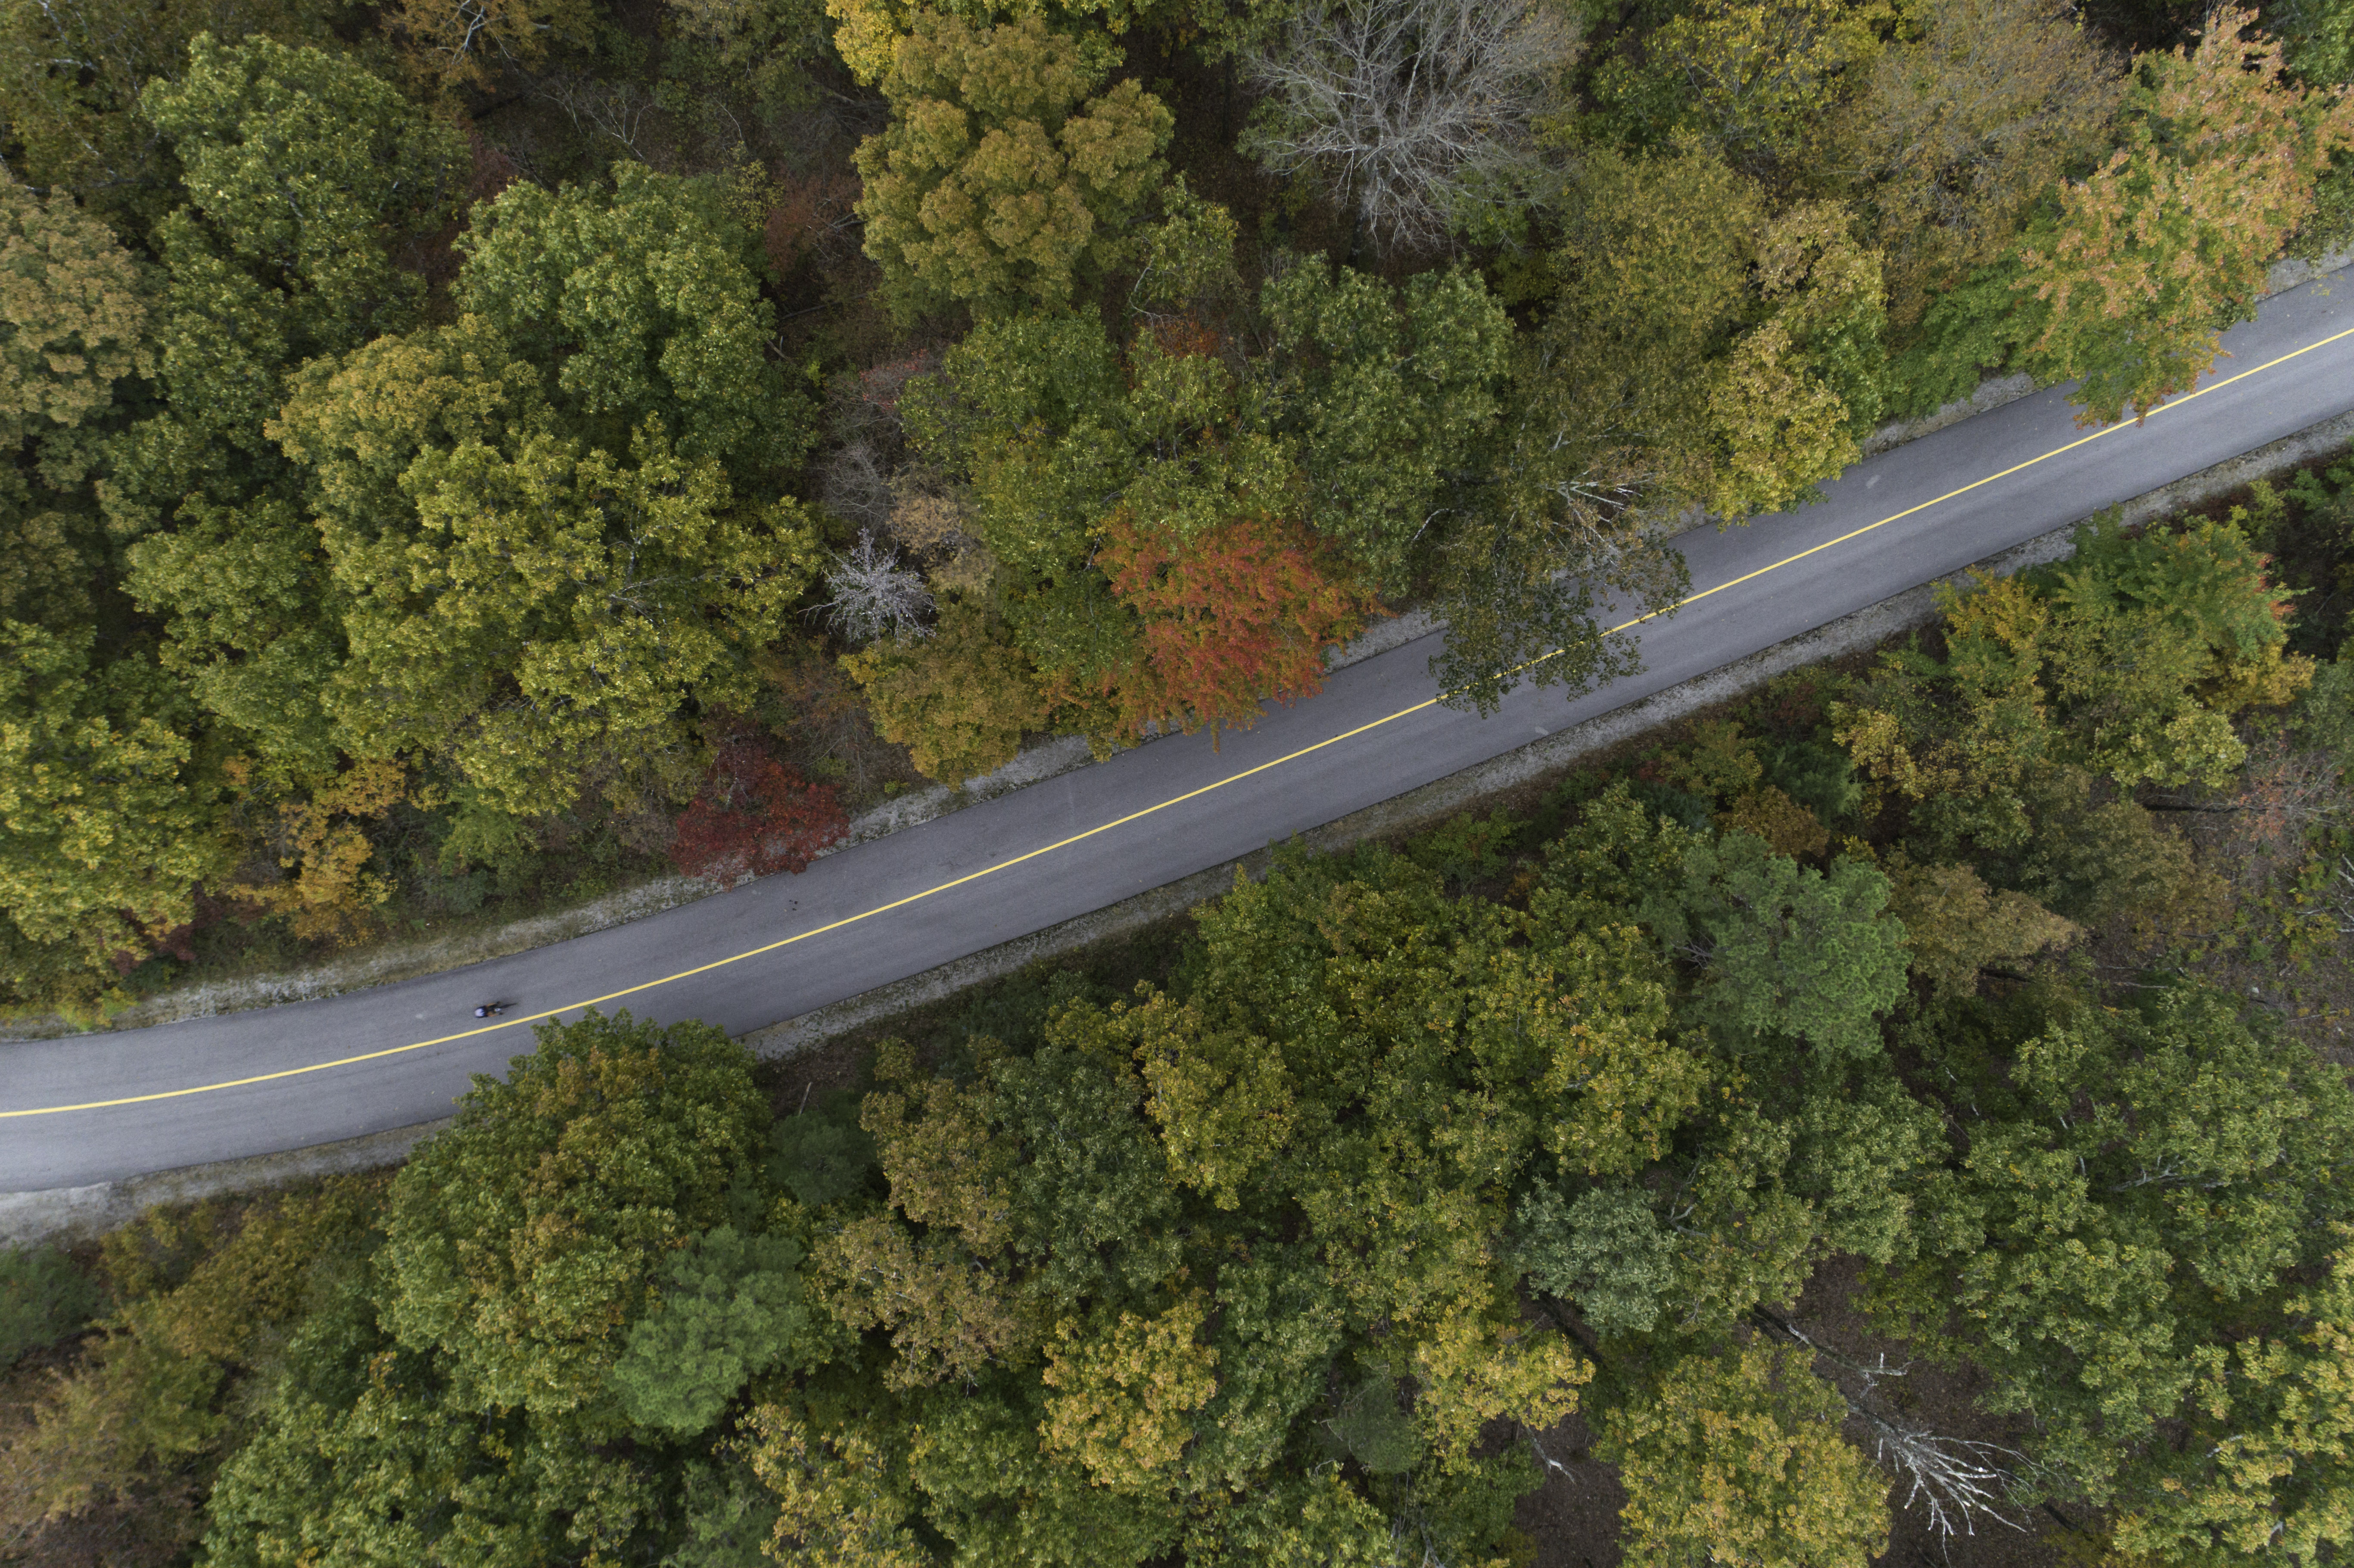 Aerial shot of lone cyclist on two-lane road